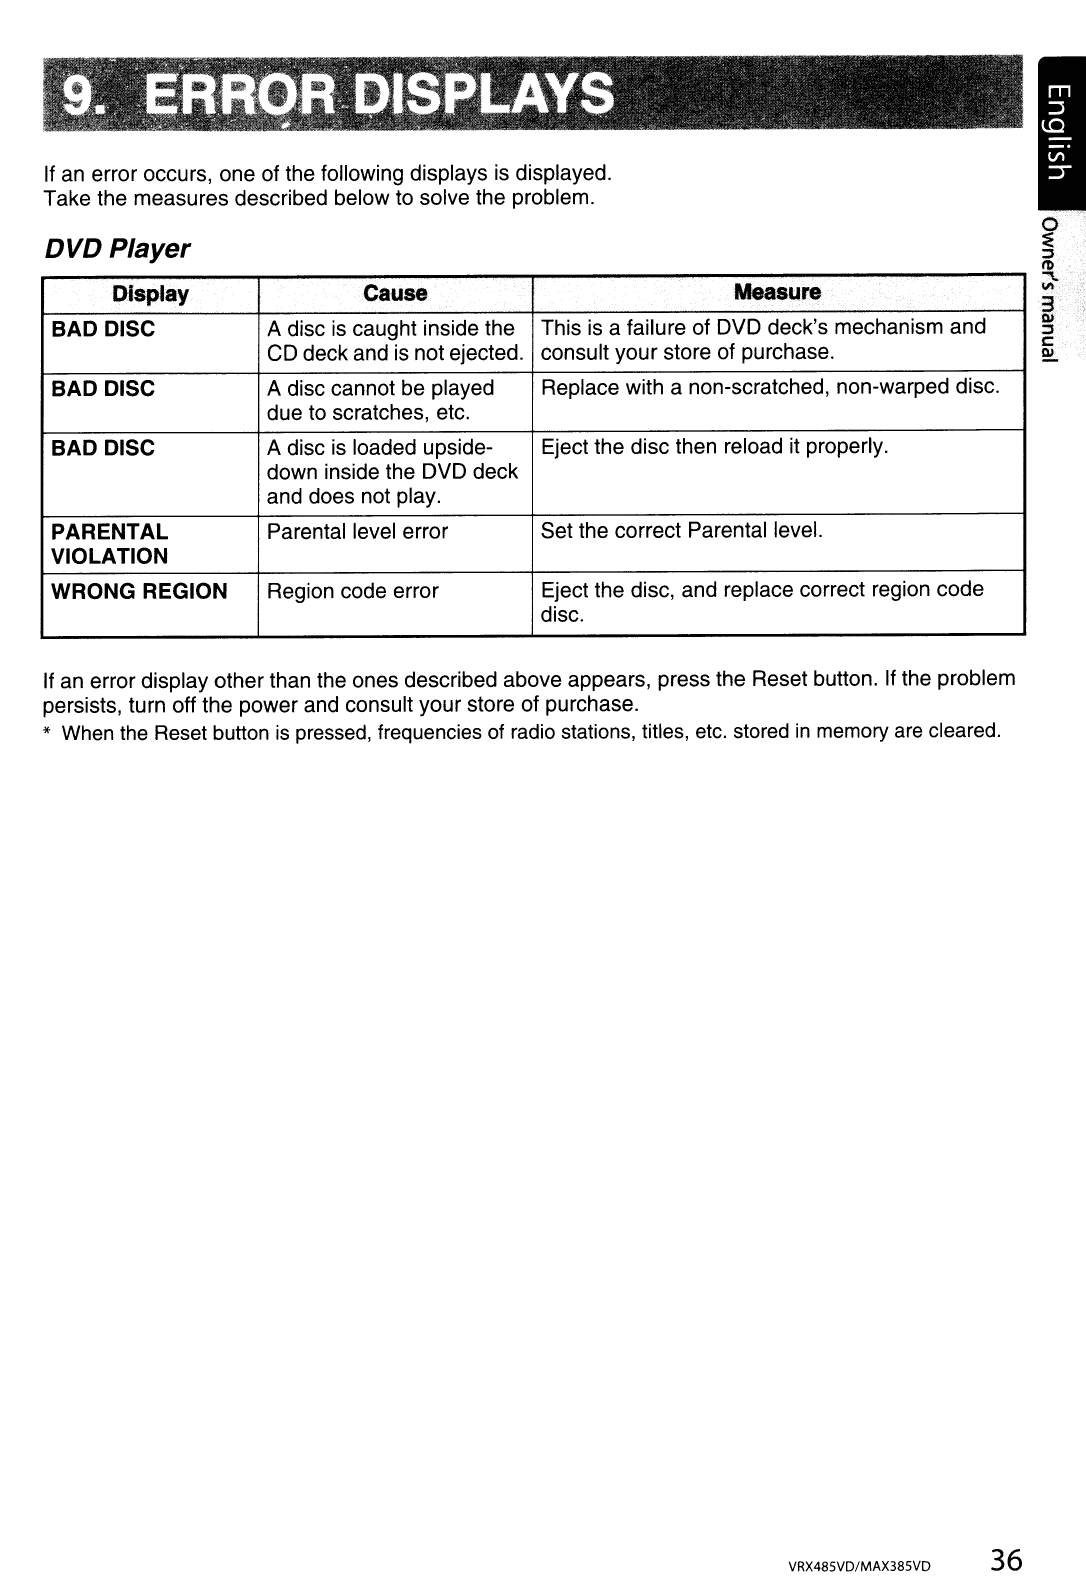 Page 36 of Clarion Car Stereo System VRX485VD User Guide